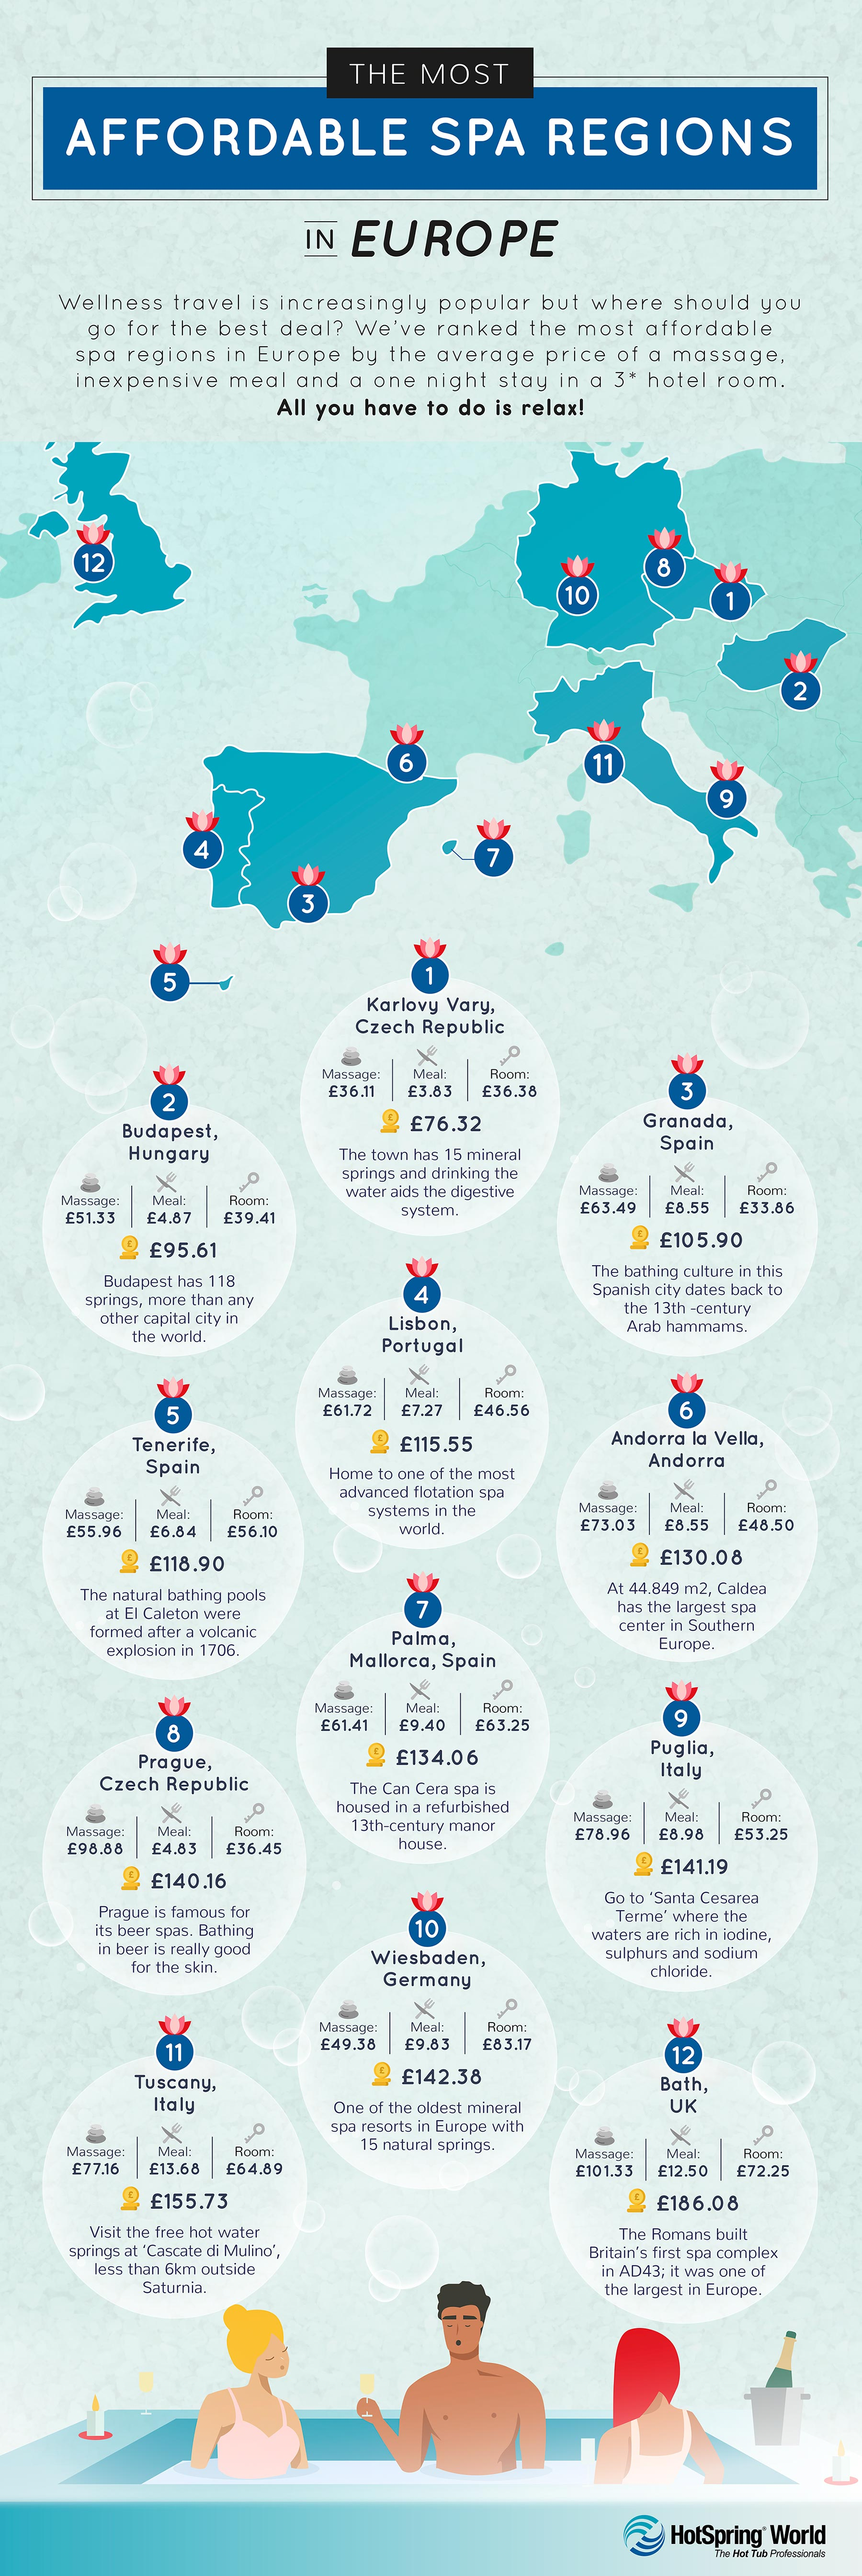 The Most Affordable Spa Cities in Europe infographic